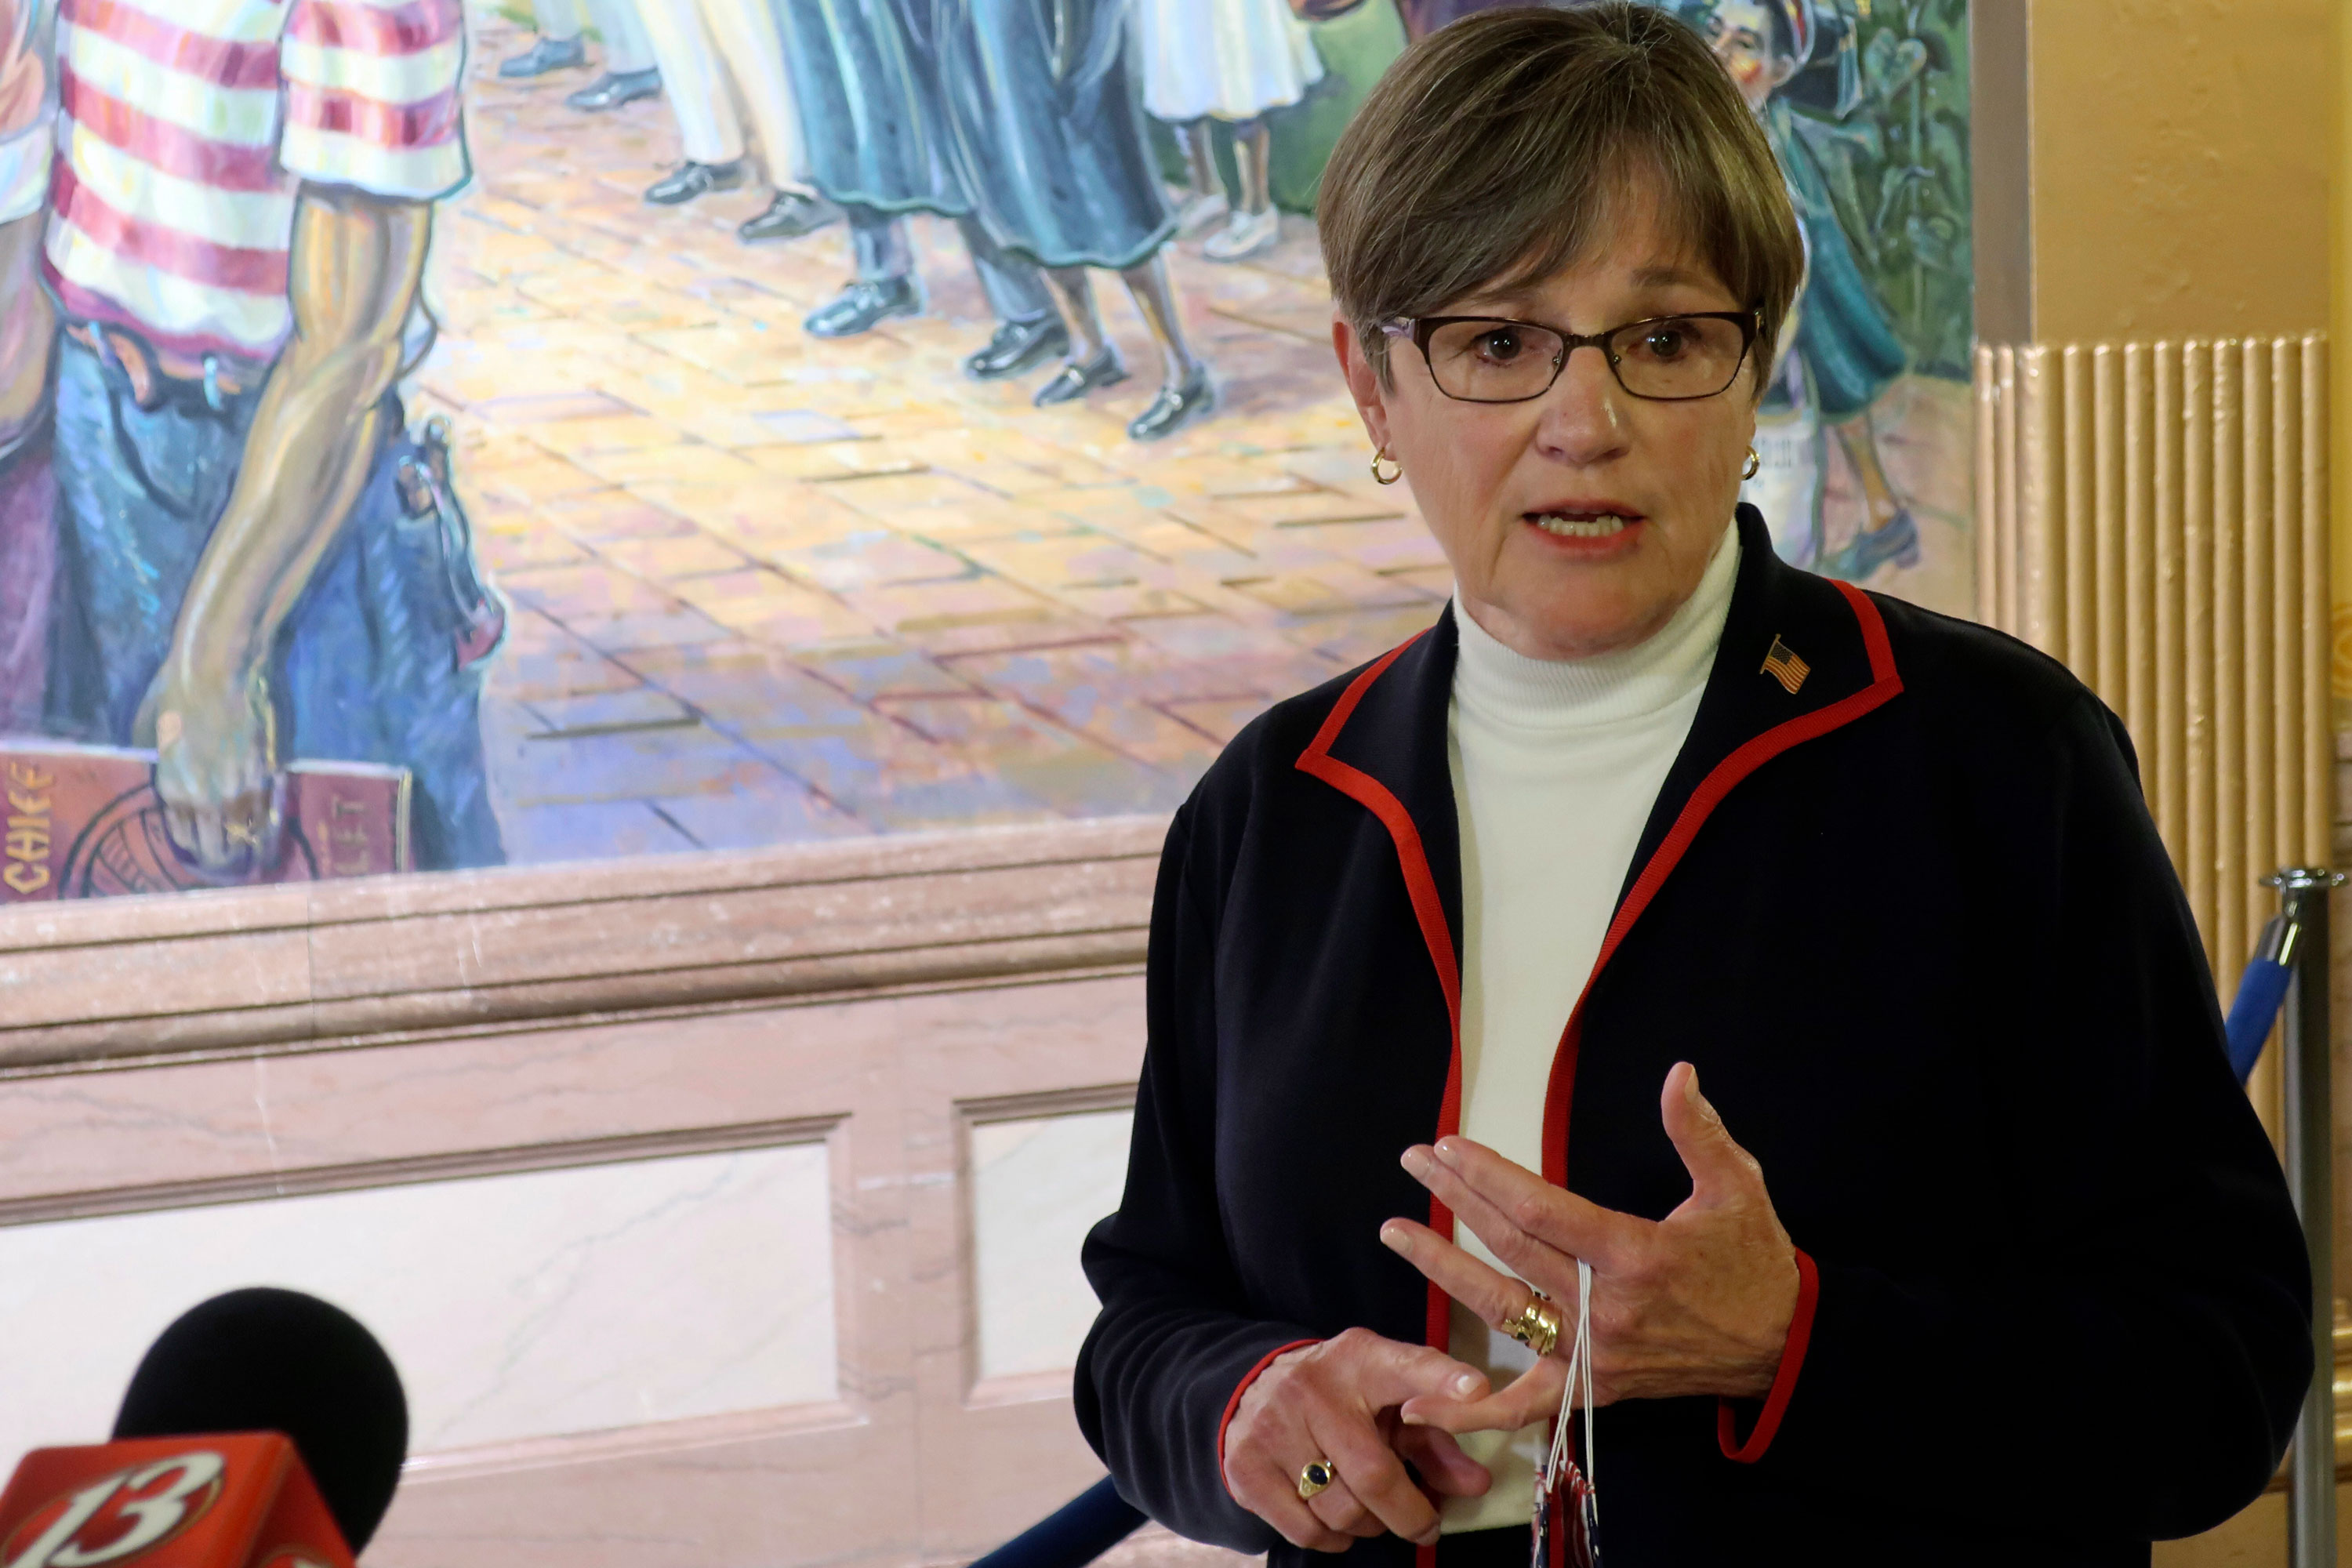 Kansas Gov. Laura Kelly answers questions from reporters about the coronavirus pandemic on July 2 at the Statehouse in Topeka, Kansas.